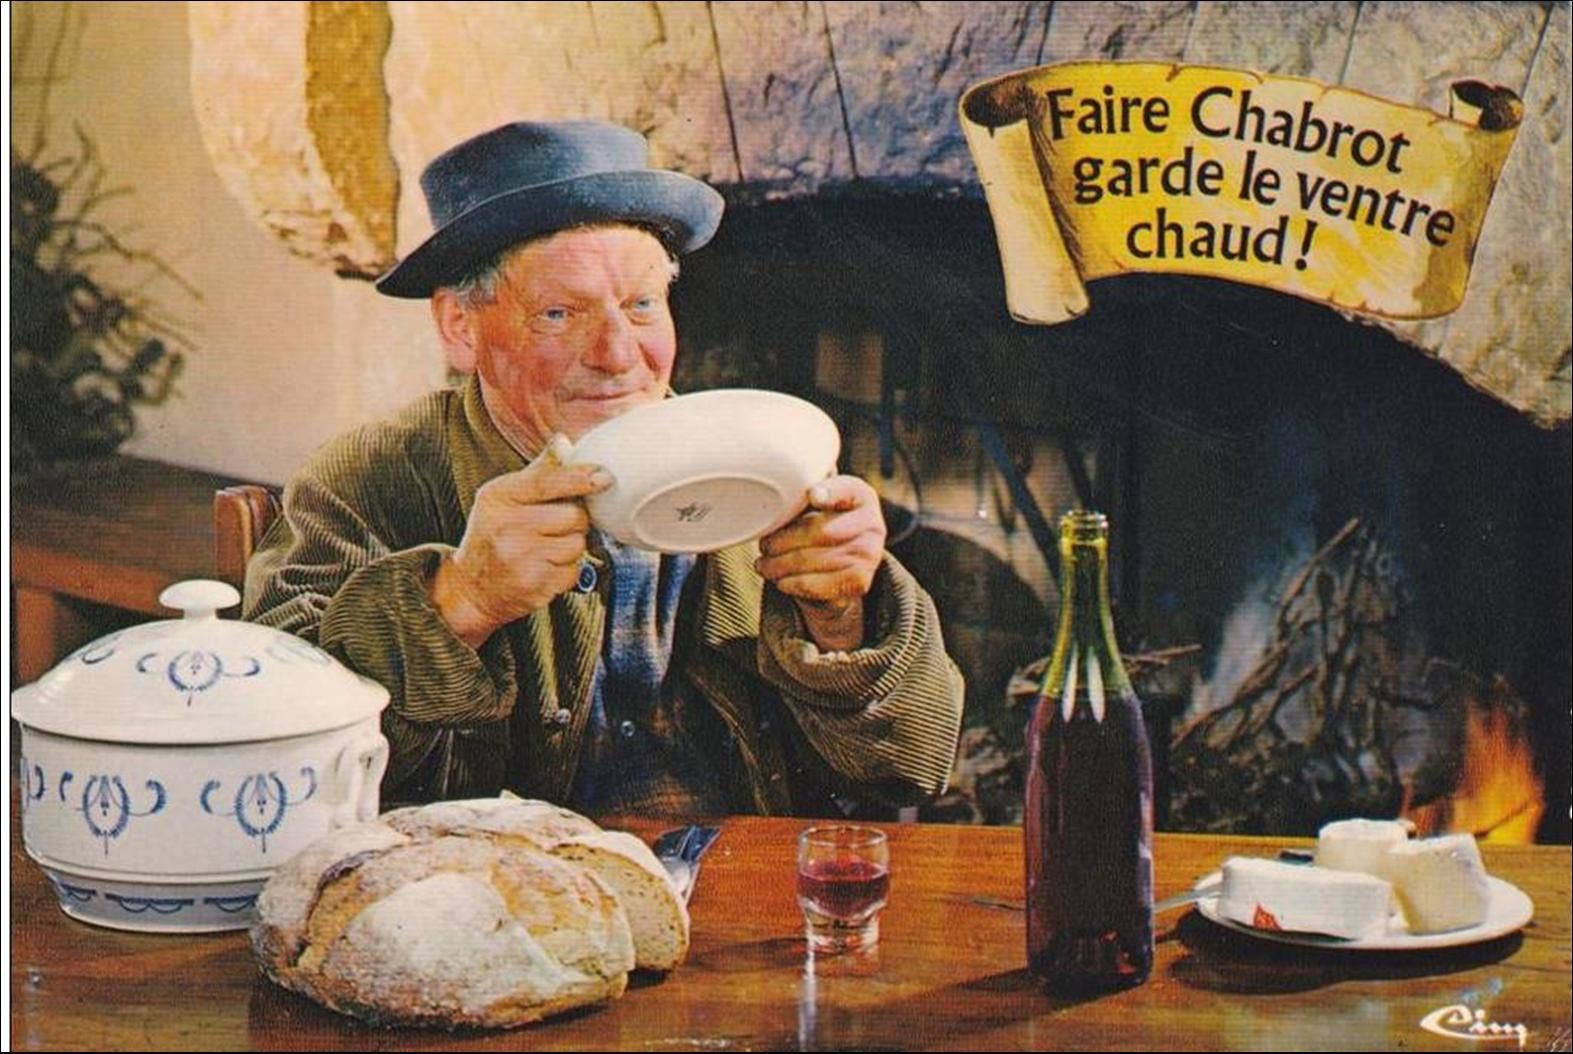 Faire Chabrot